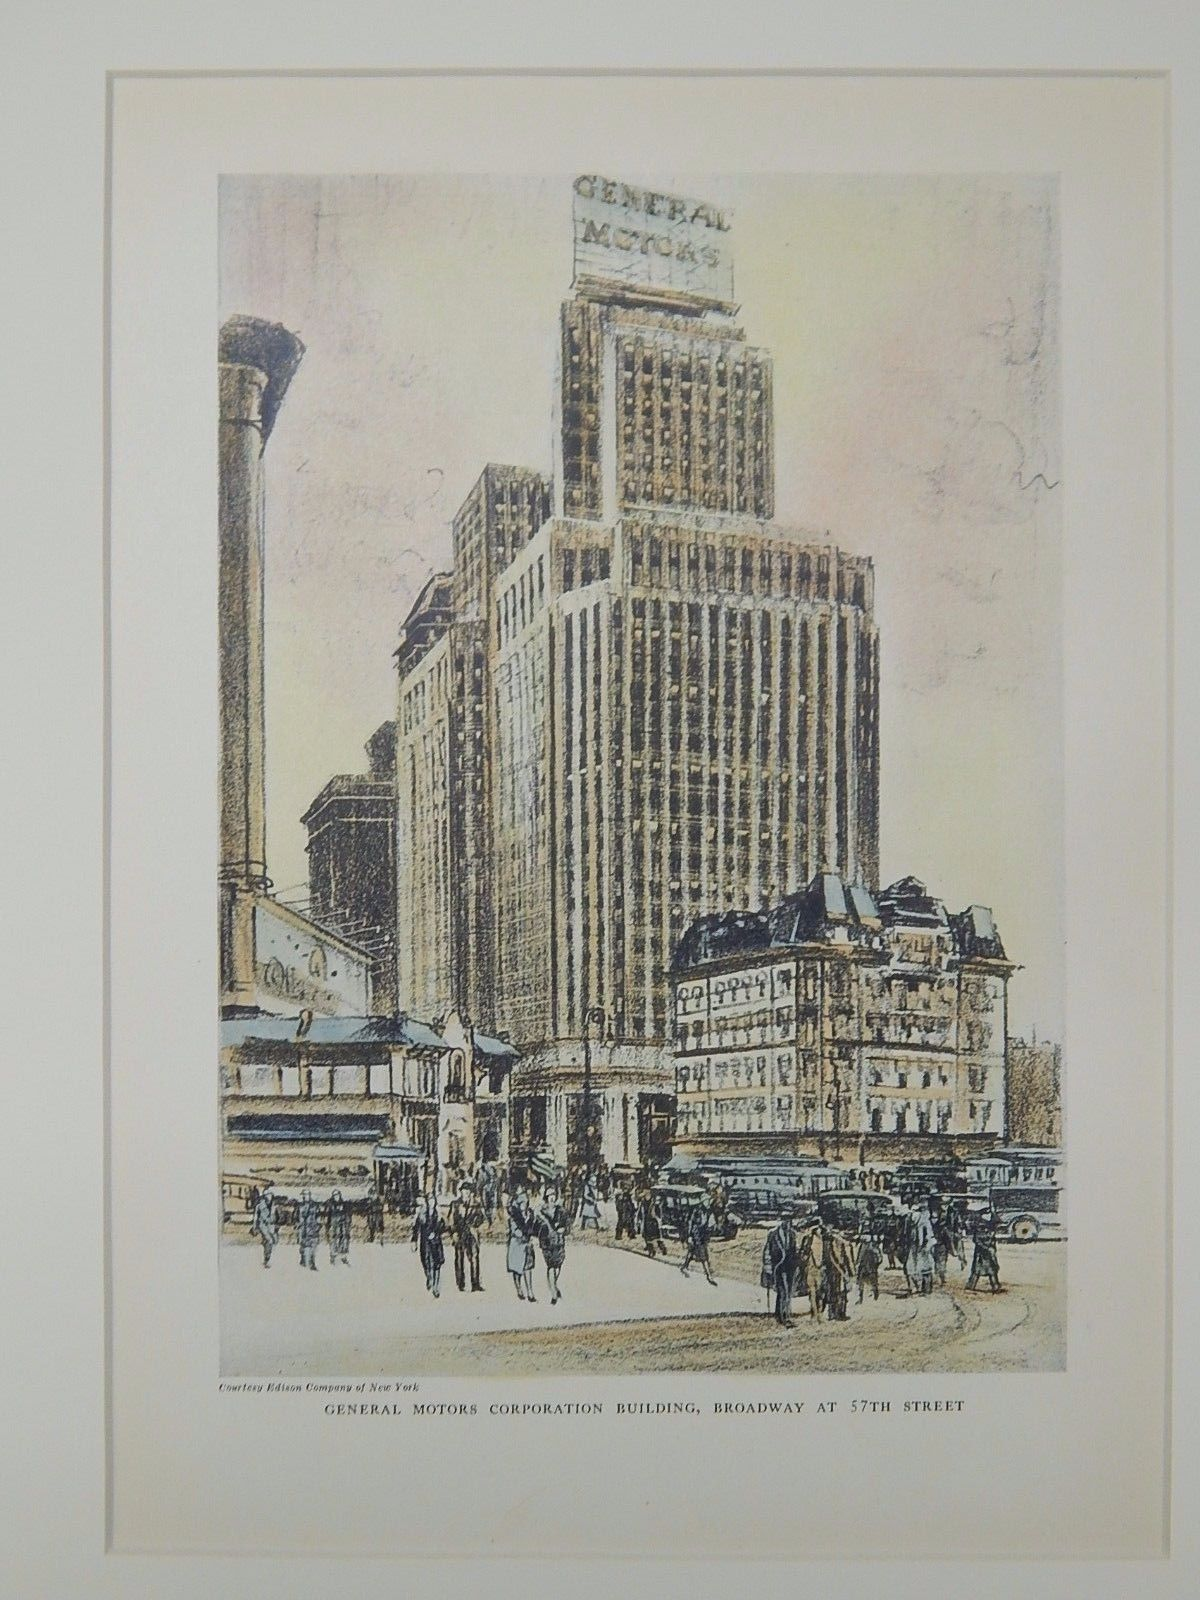 General Motors Corporation Building Broadway 57th New York Ny